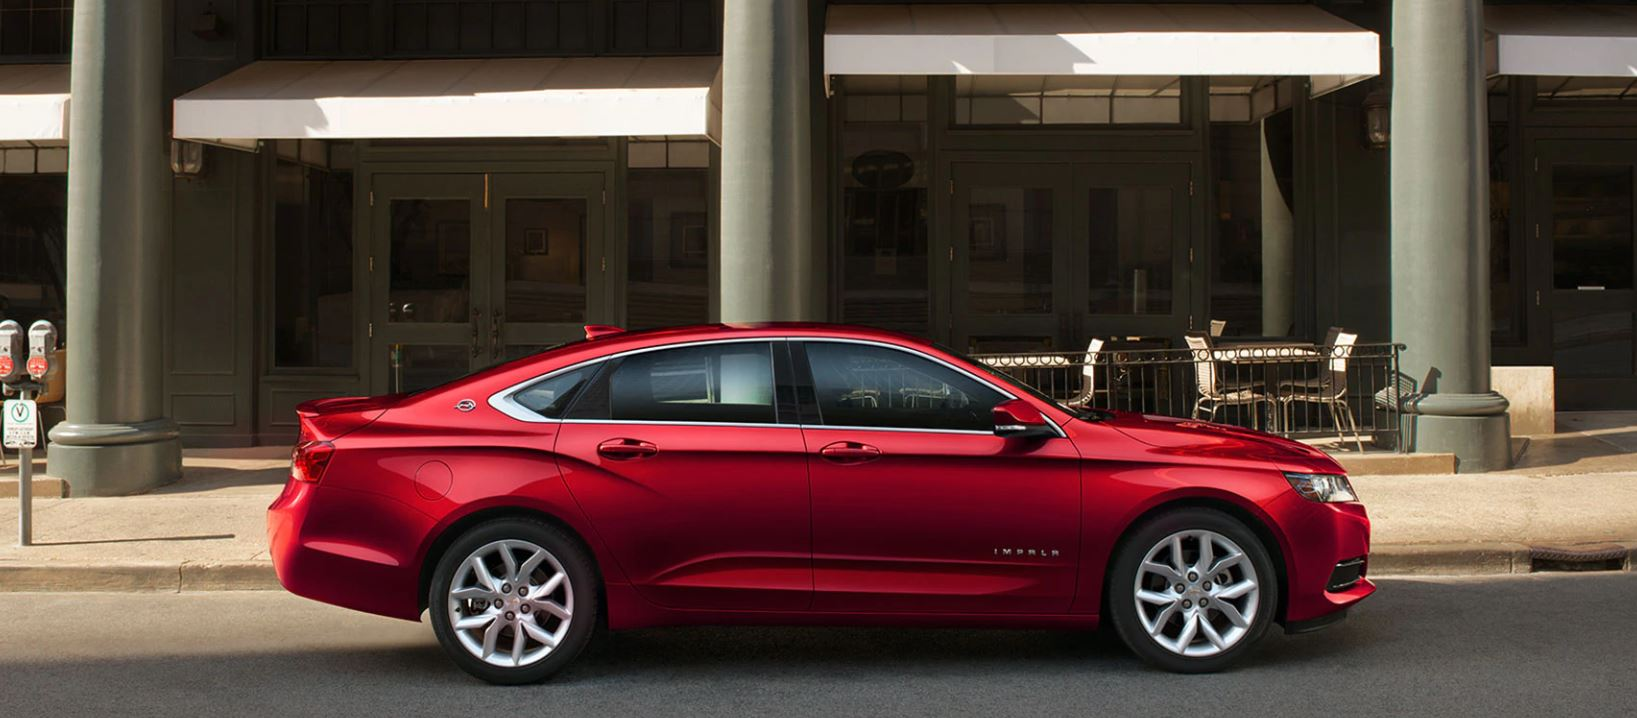 2020 Chevrolet Impala for Sale near Orland Park, IL